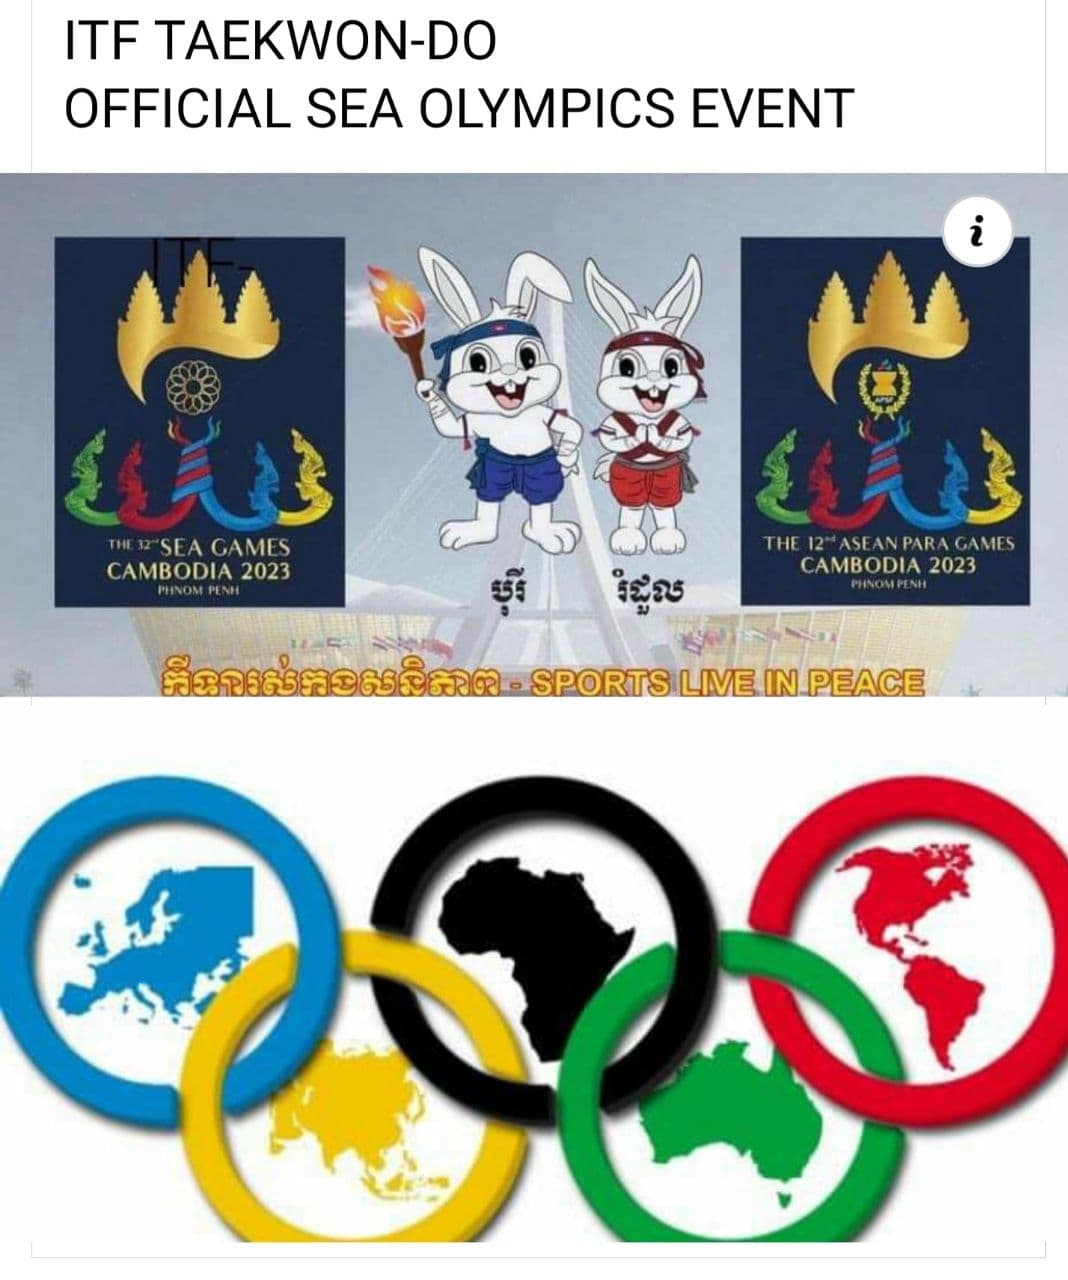 TAEKWONDO ITF OFFICIAL SEA OLYMPICS EVENT 2023 y.